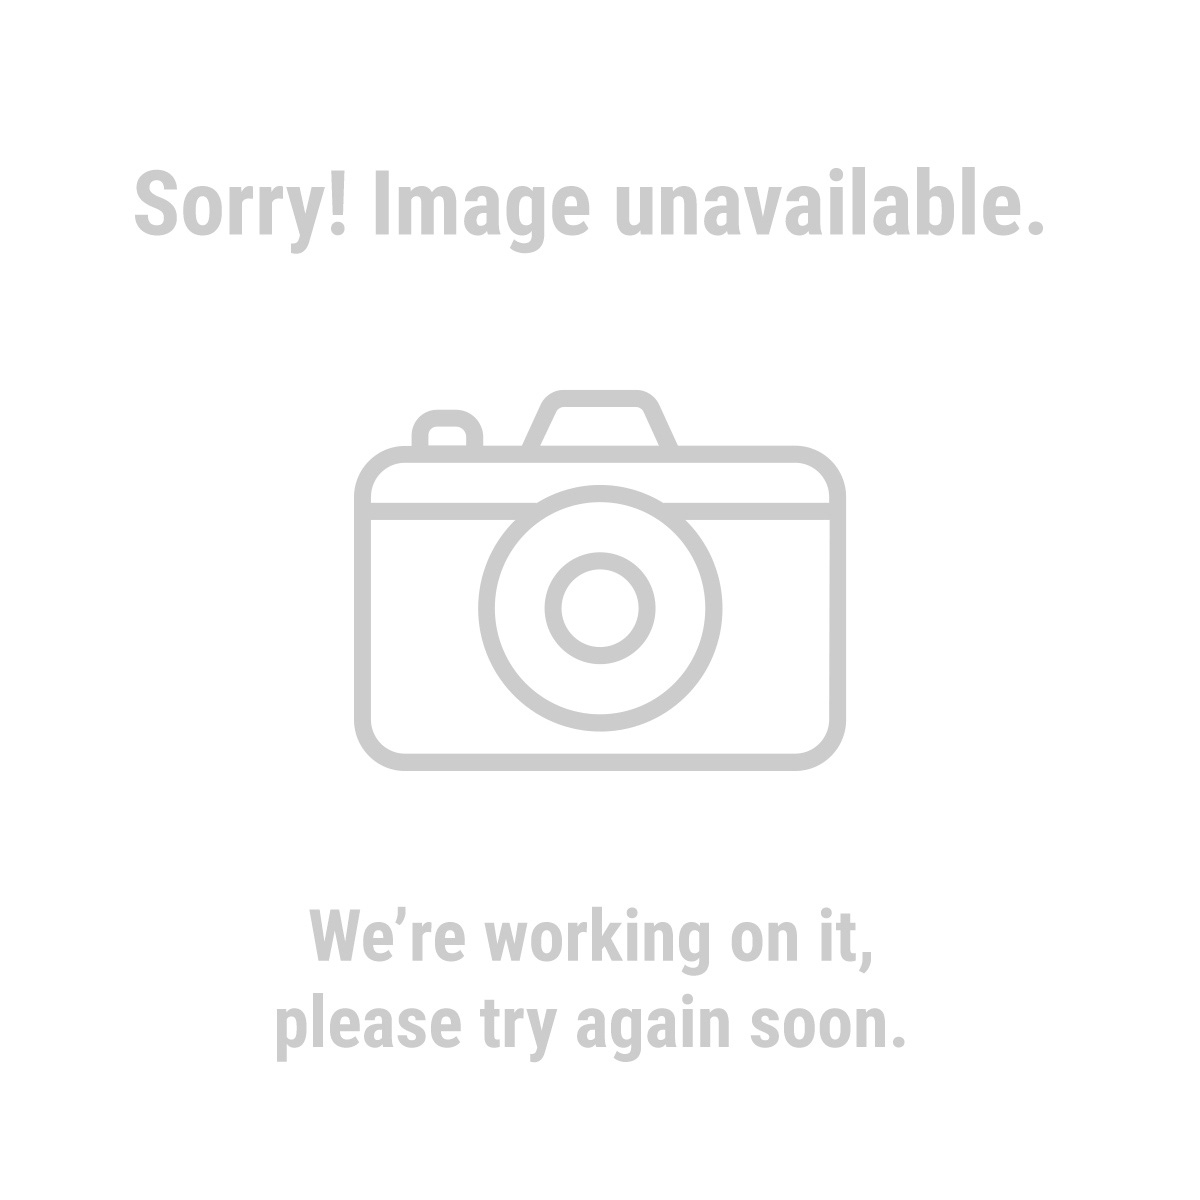 NiteIze Hardware 97617 Big Figure 9 Rope Tightener, Black